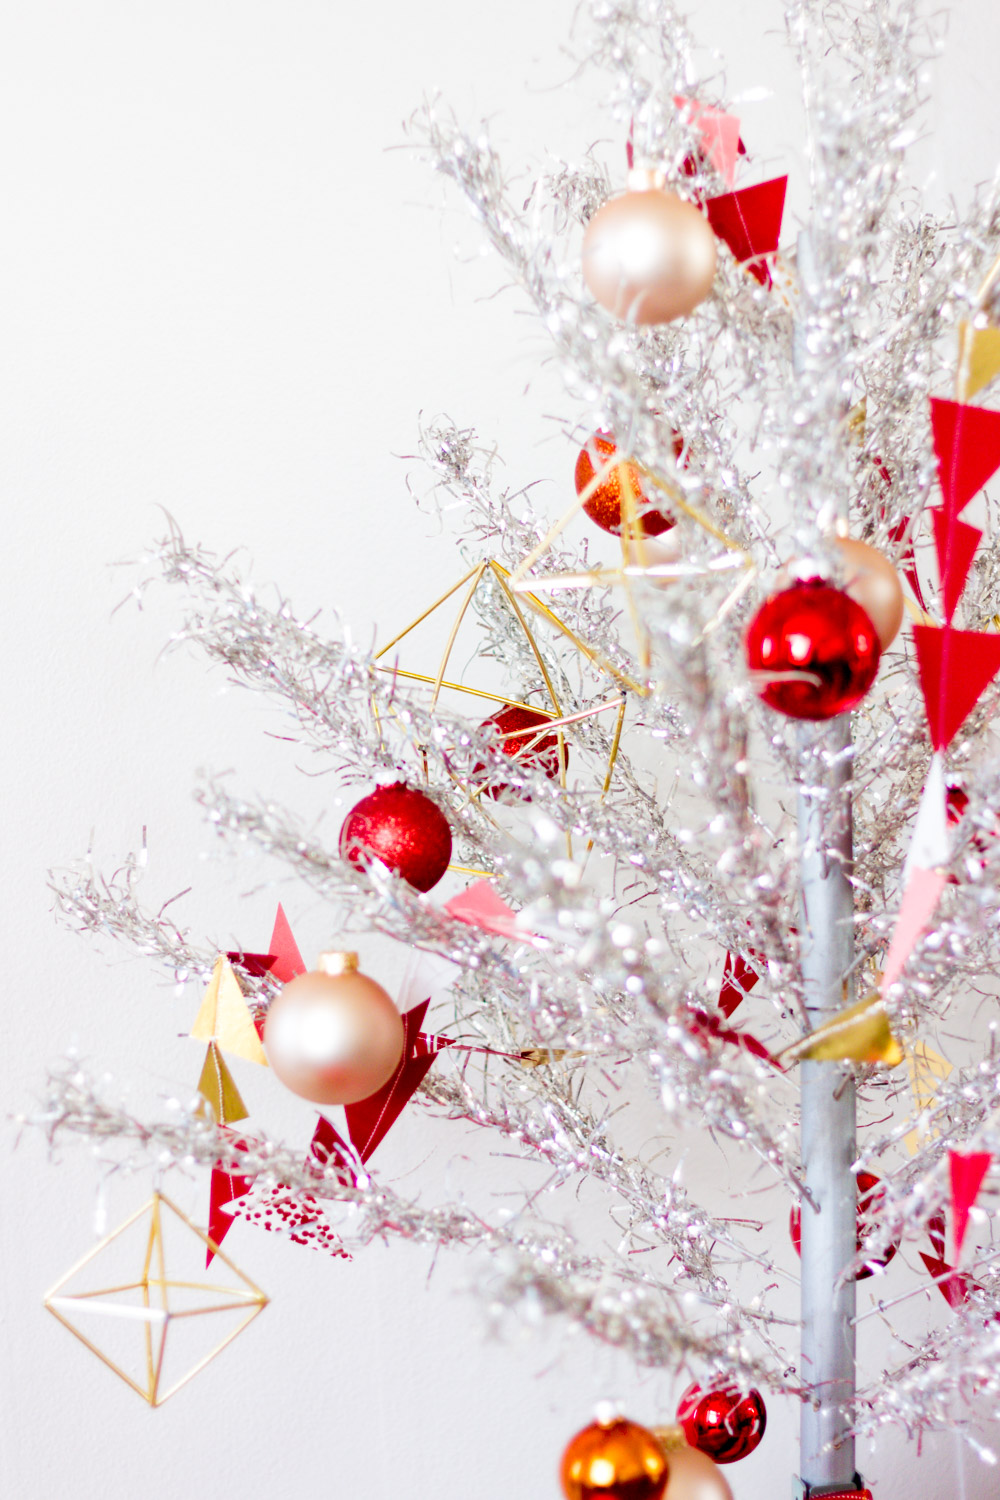 Red and Pink Decorations on Vintage Aluminum Christmas Tree